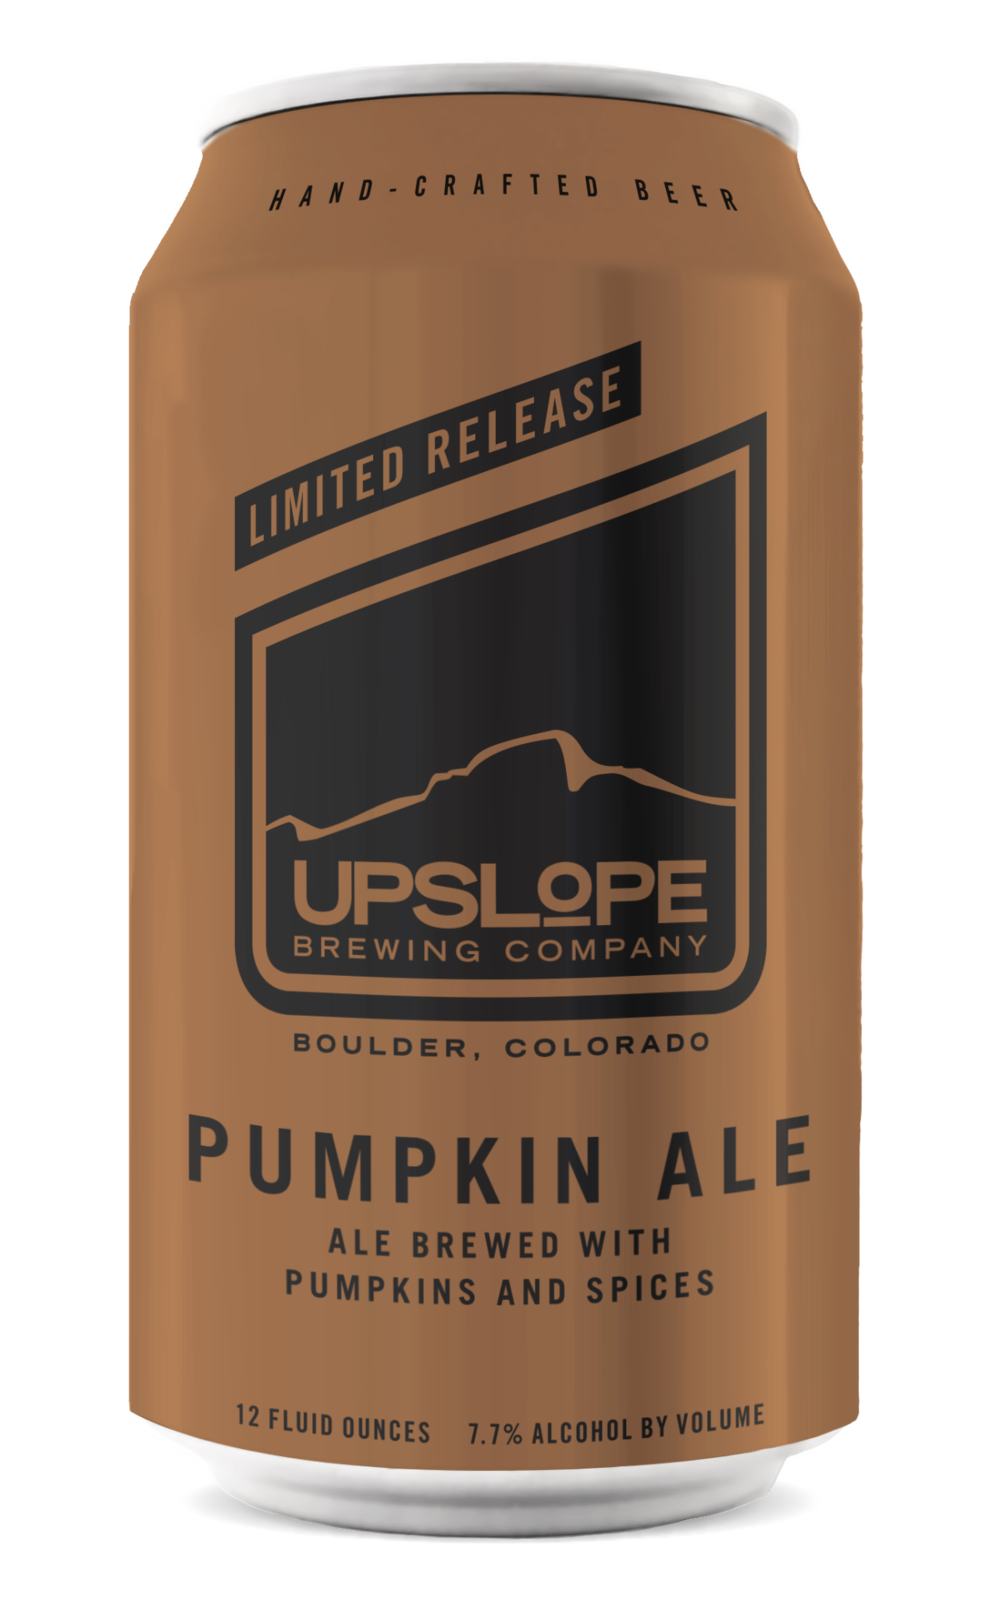 Photo © Upslope Brewing